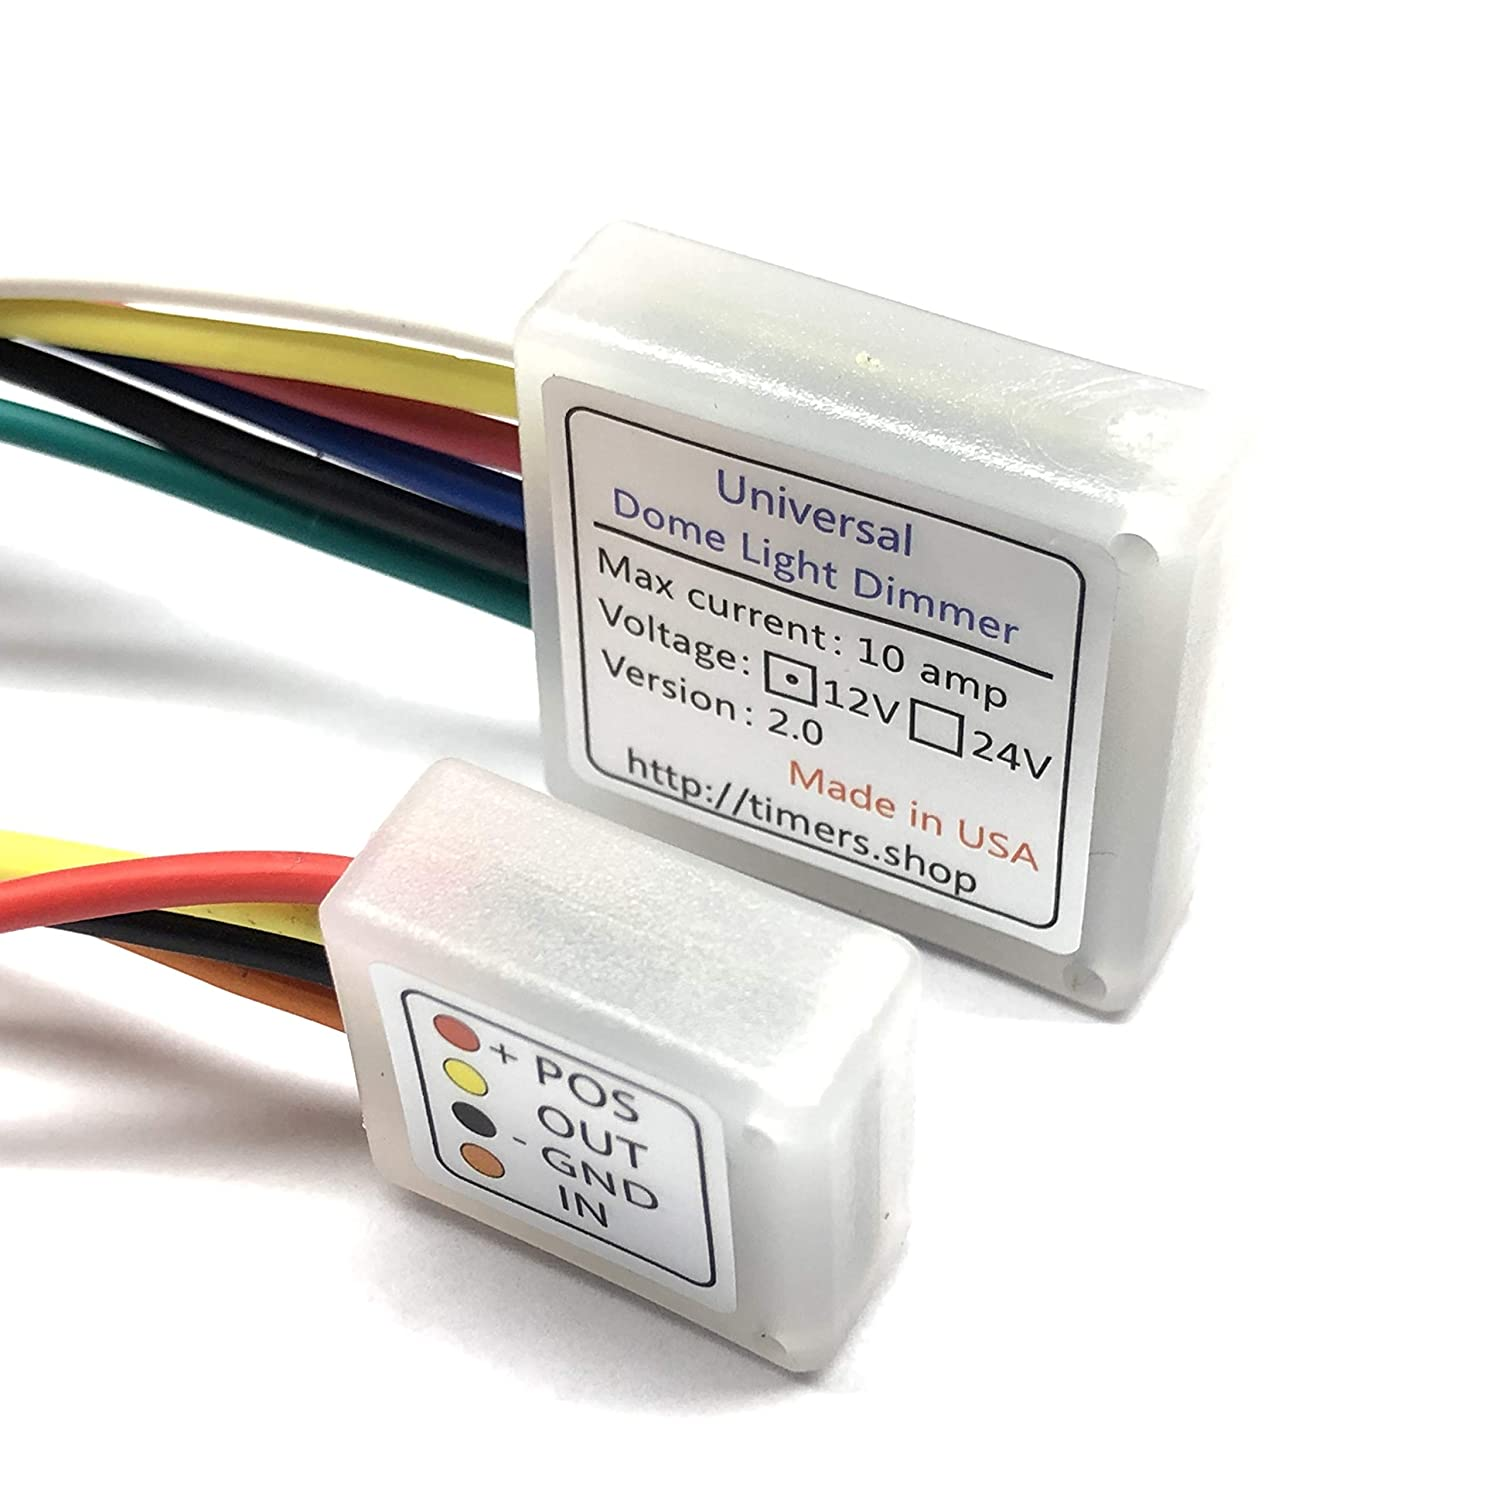 Dome Light Dimmer With Delay Fits Any Car 20 Sec And Time Relay Circuit Diagram Also On Dei Wiring 10 Min Timeout Automotive